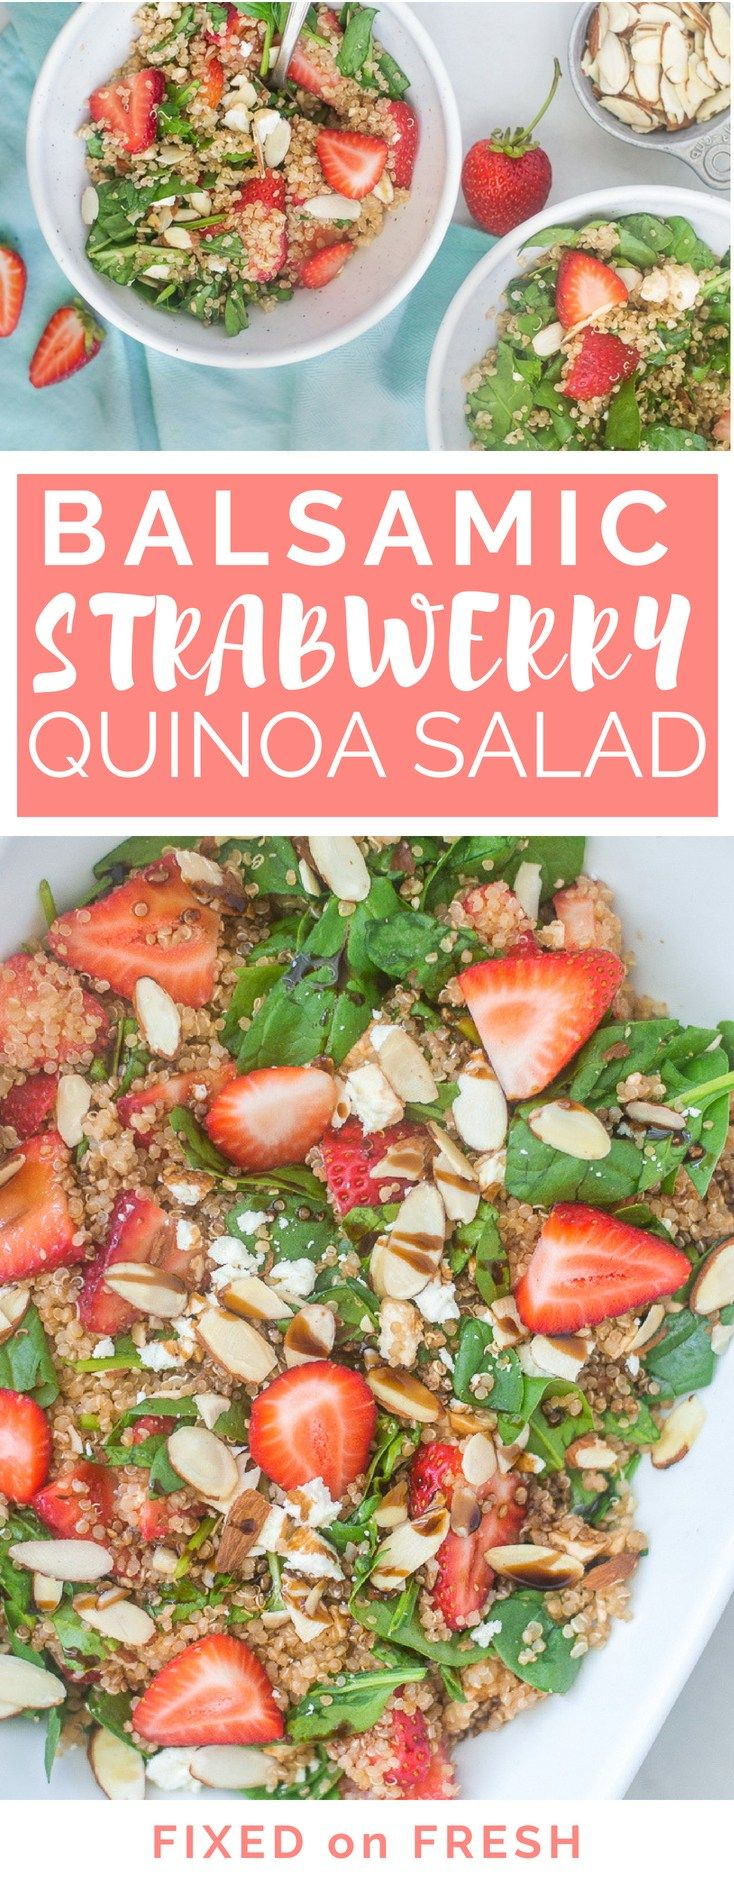 Balsamic Strawberry Quinoa Salad images